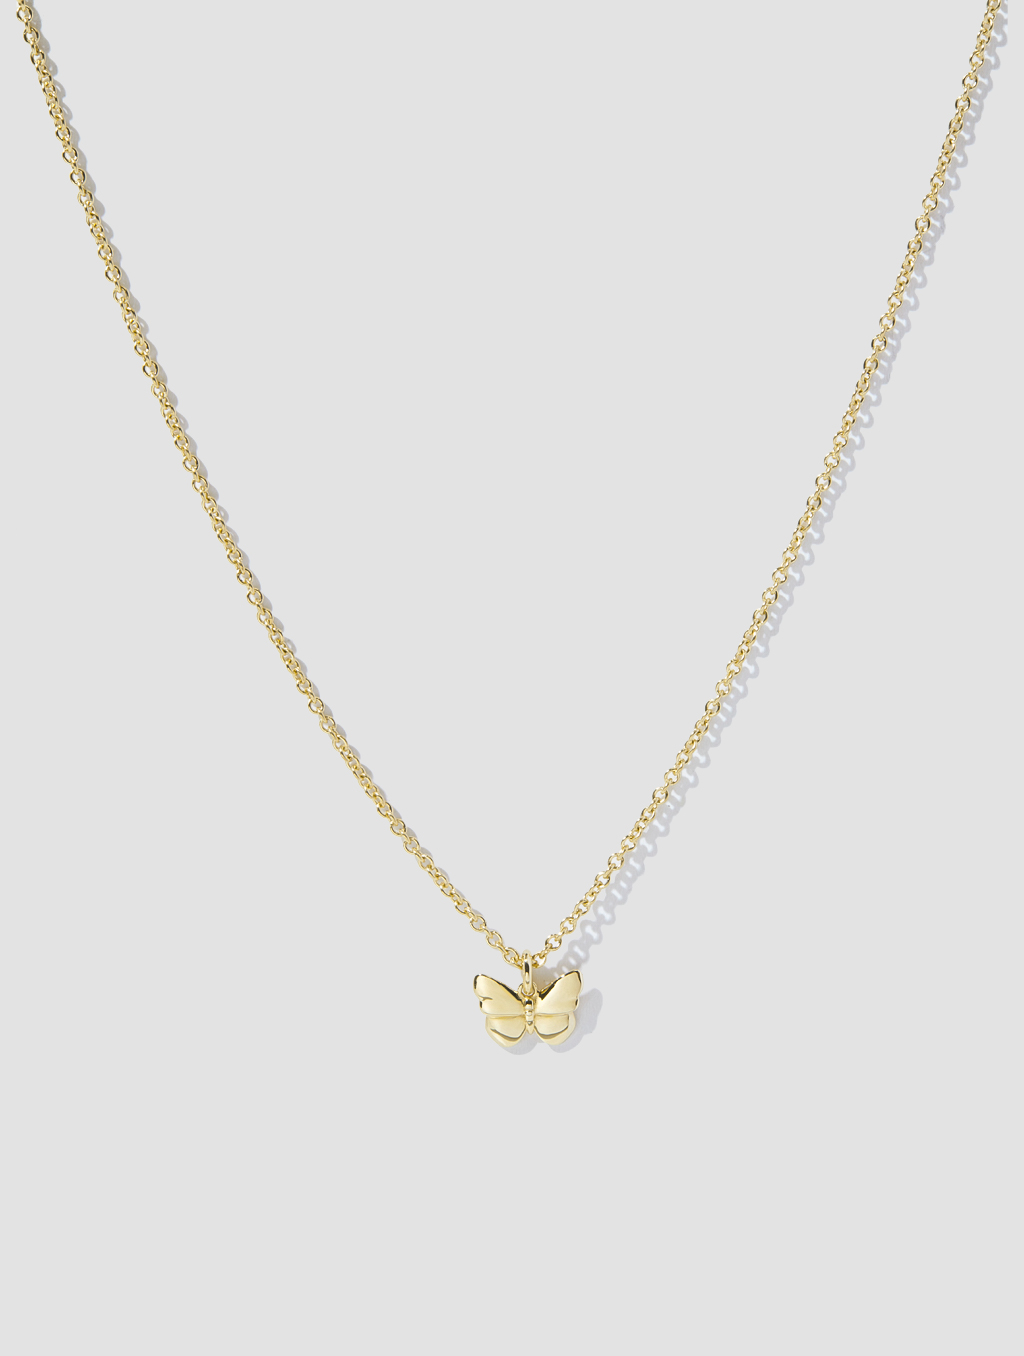 Golden Butterfly Necklace-positive1-18k Yellow Gold